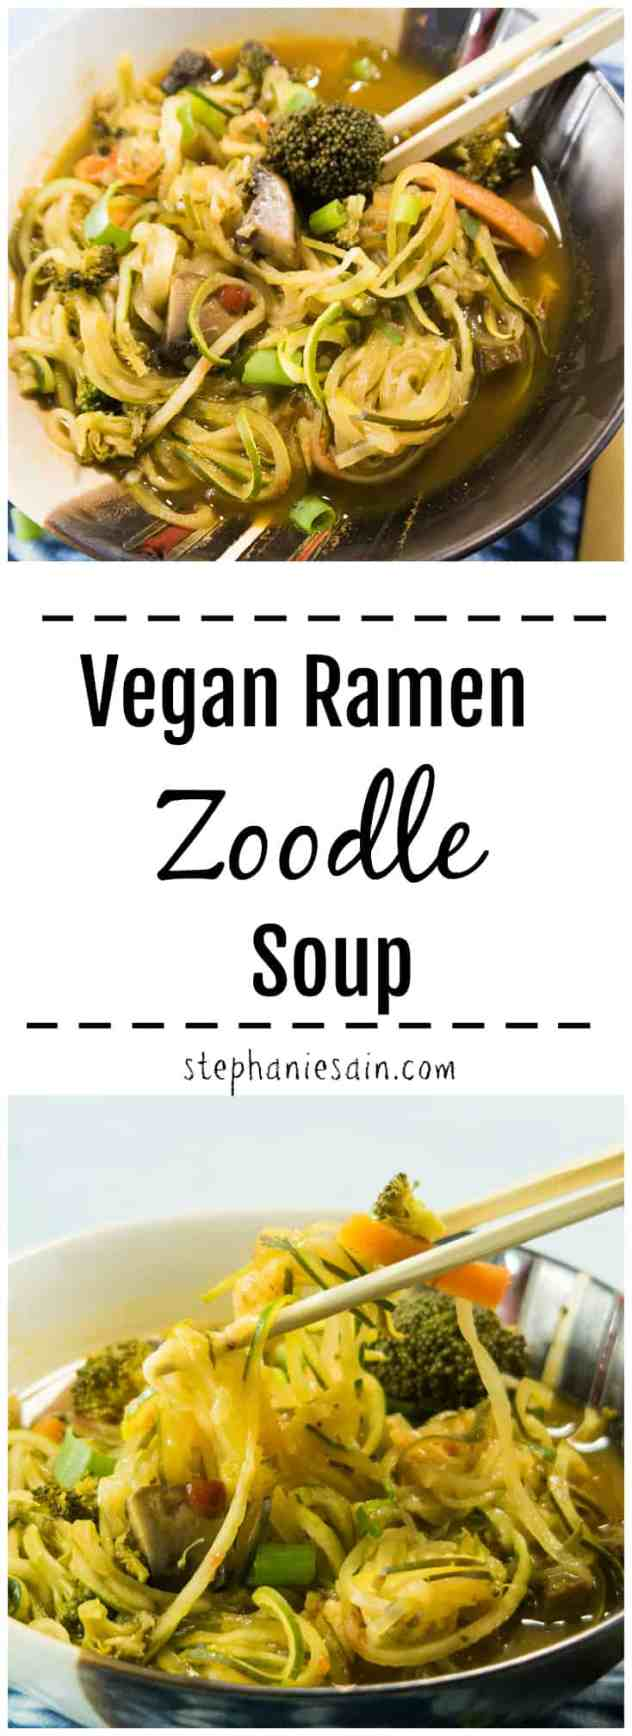 This Vegan Ramen Zoodle Soup is loaded with fresh veggies and zucchini noodles. A healthier version of ramen takeout noodles. Gluten Free.